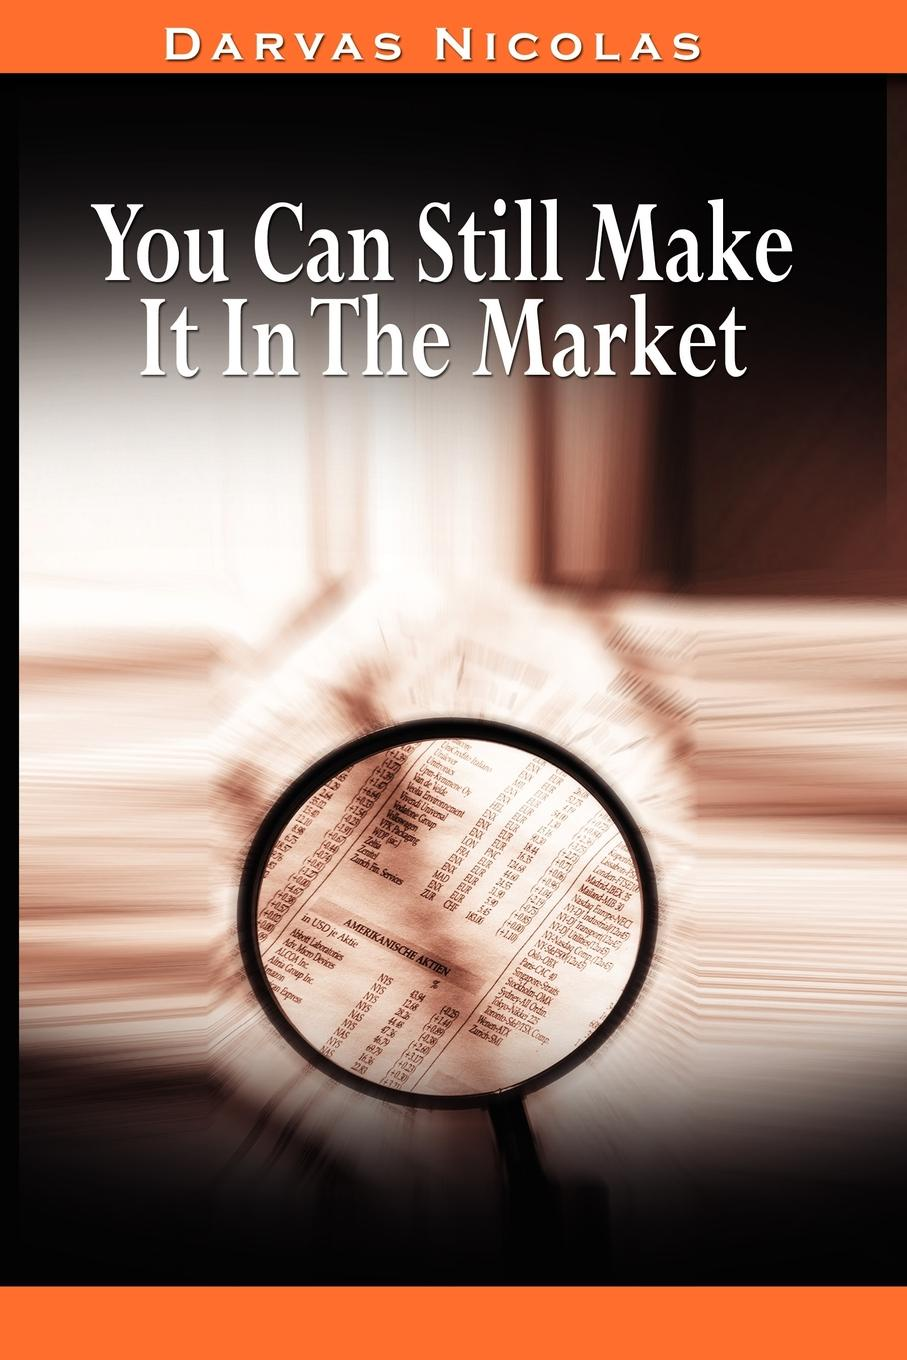 Nicolas Darvas You Can Still Make It In The Market by Nicolas Darvas (the author of How I Made .2,000,000 In The Stock Market) free shipping kayipht cm400ha1 24h can directly buy or contact the seller